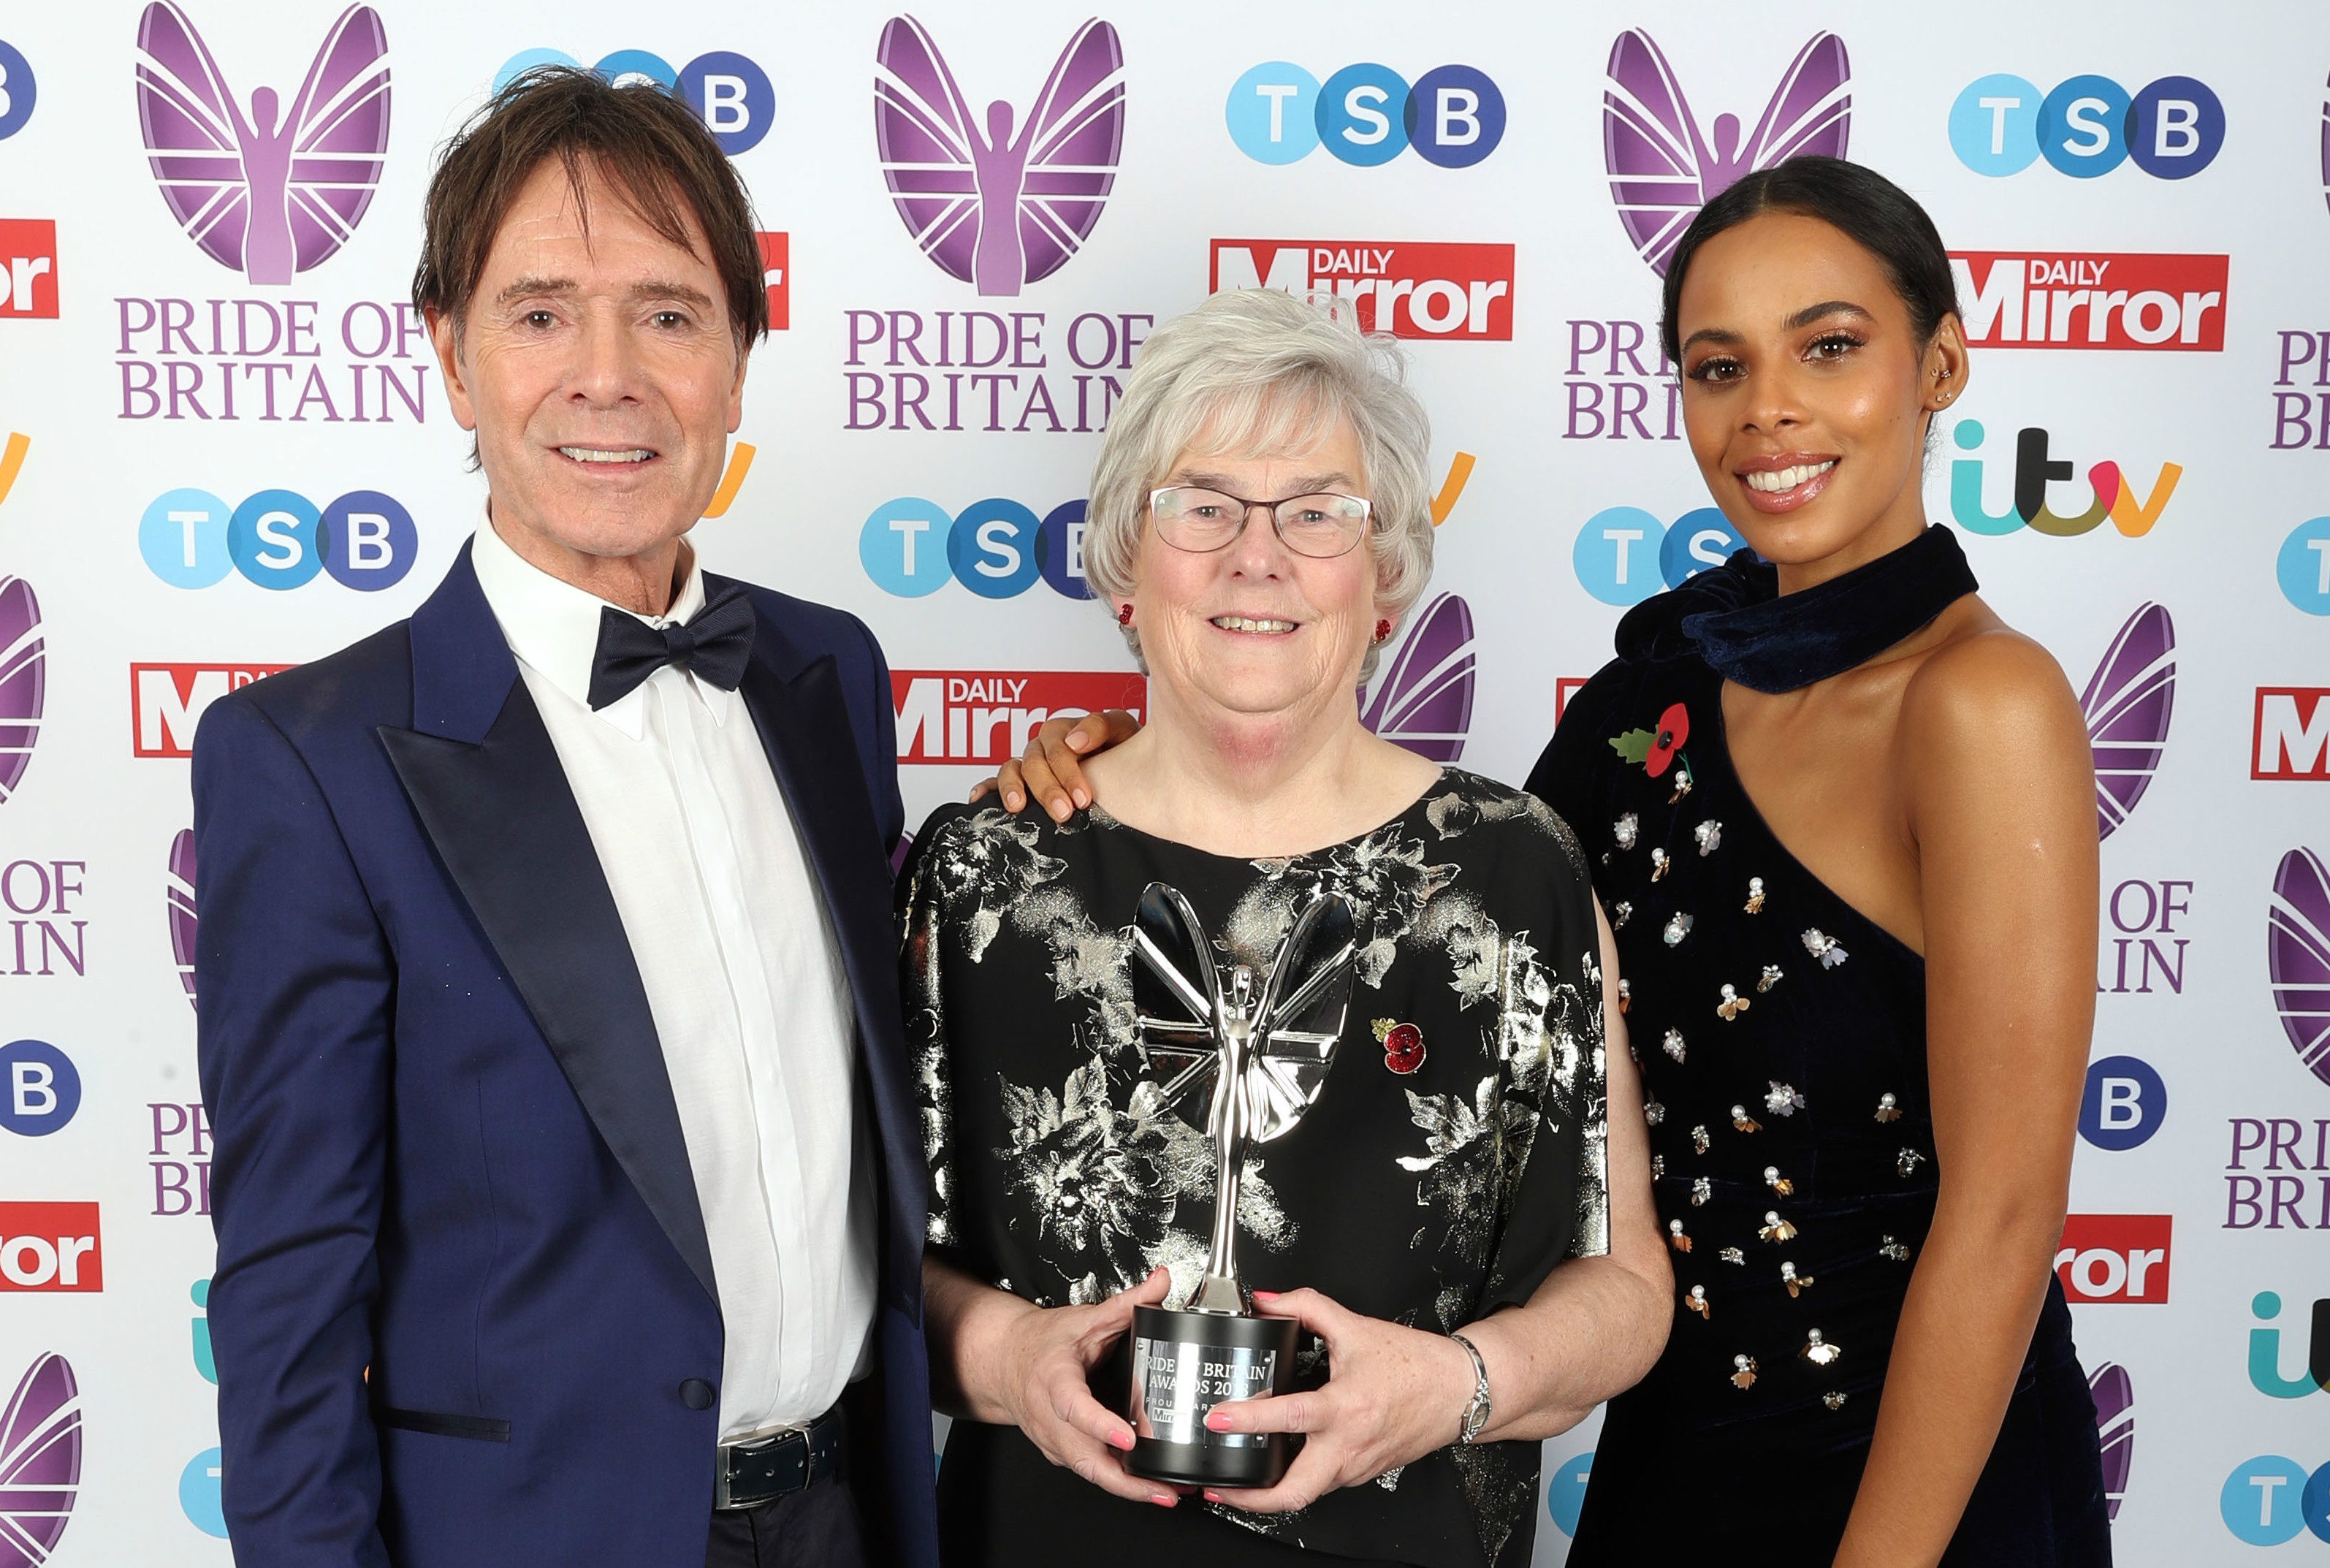 Poppy Appeal organiser wins Pride of Britain